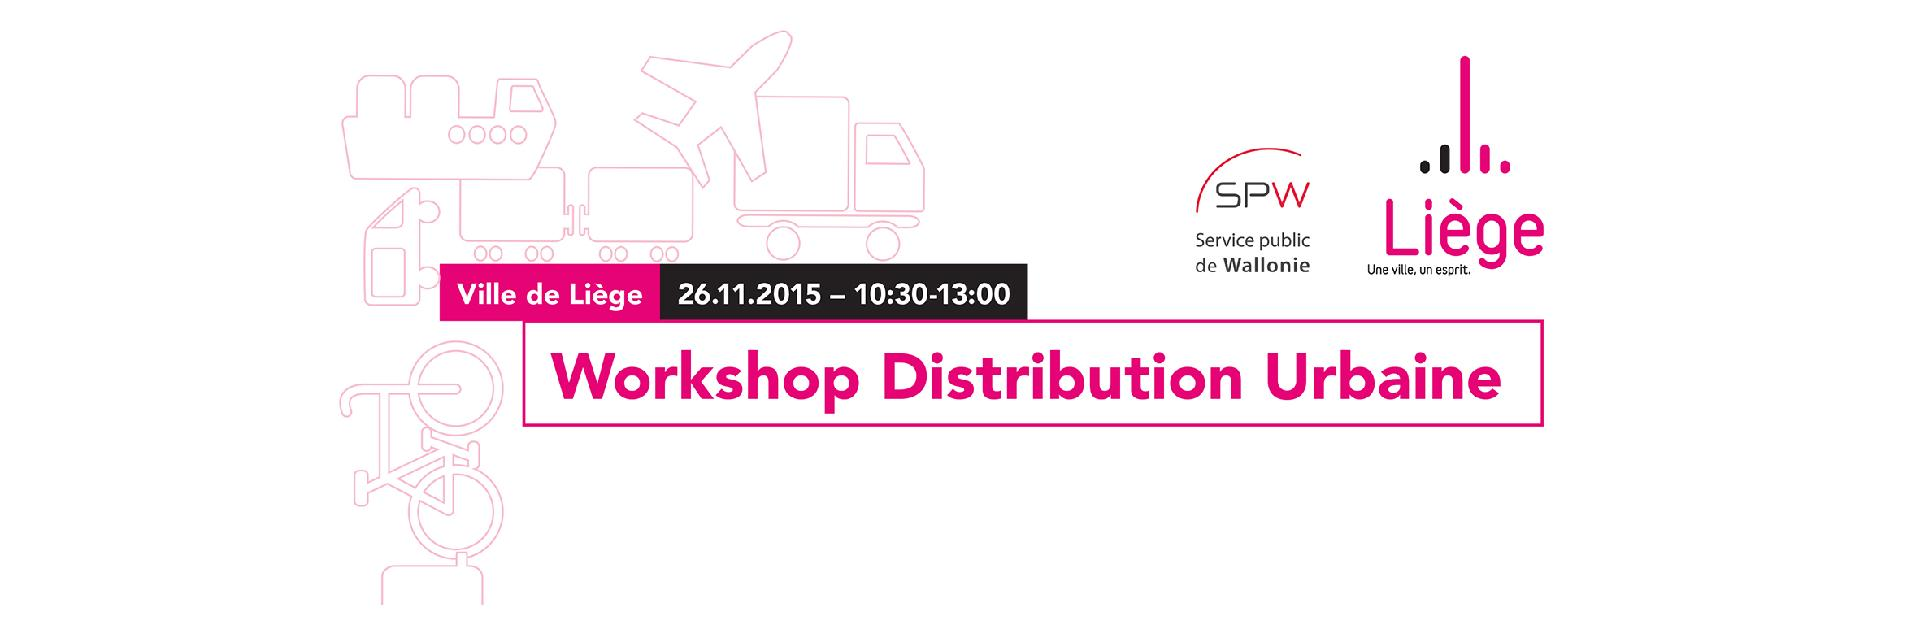 Workshop Distribution Urbaine